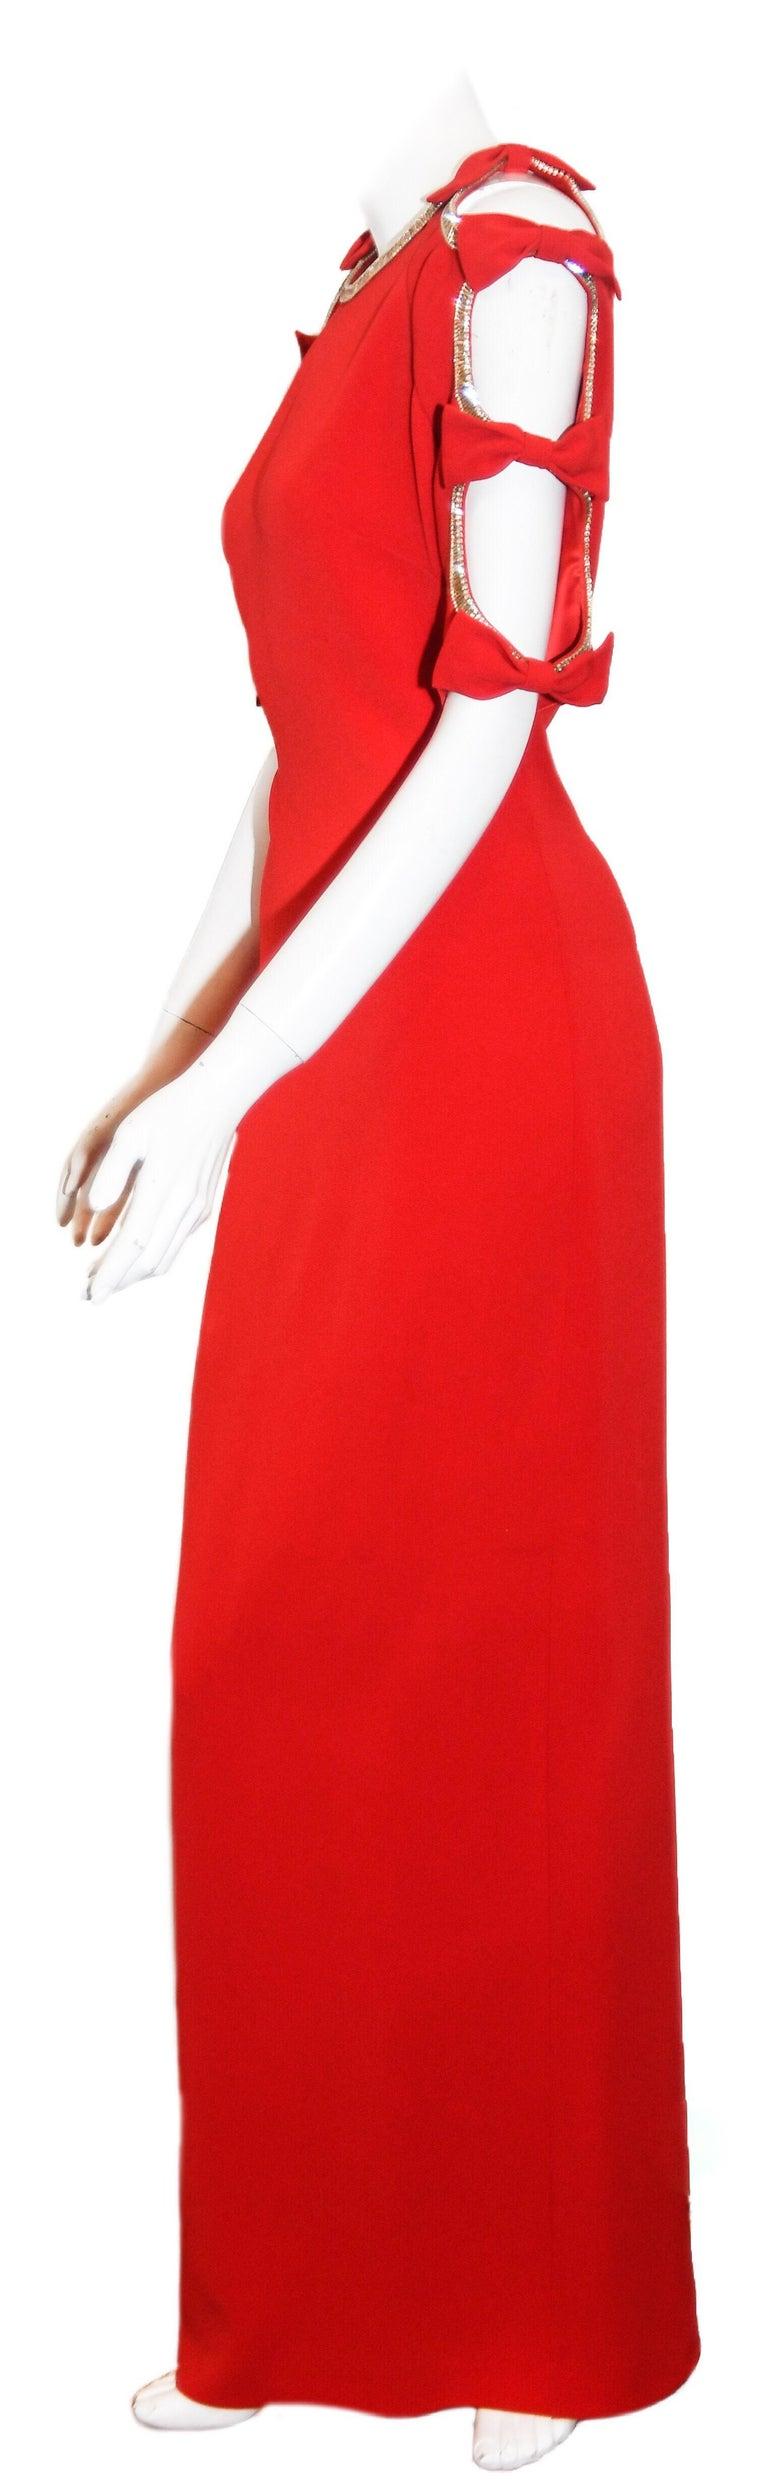 Jenny Packham Red Gown W/ Cold Shoulder Embellished Sleeves In Excellent Condition For Sale In Palm Beach, FL